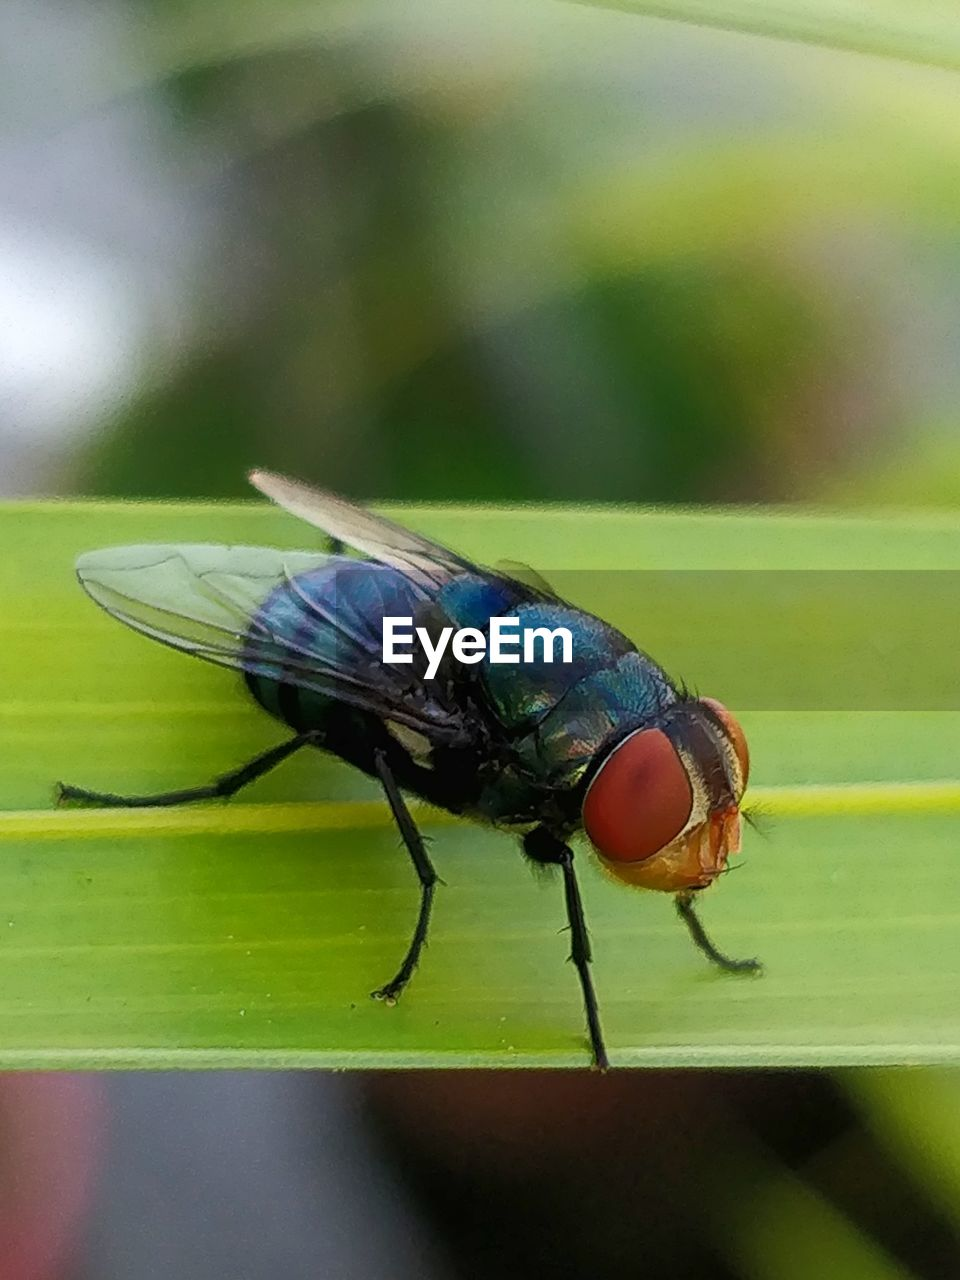 insect, invertebrate, animal themes, one animal, animal wildlife, animals in the wild, animal, close-up, focus on foreground, day, fly, animal wing, green color, nature, housefly, outdoors, no people, selective focus, plant part, leaf, animal eye